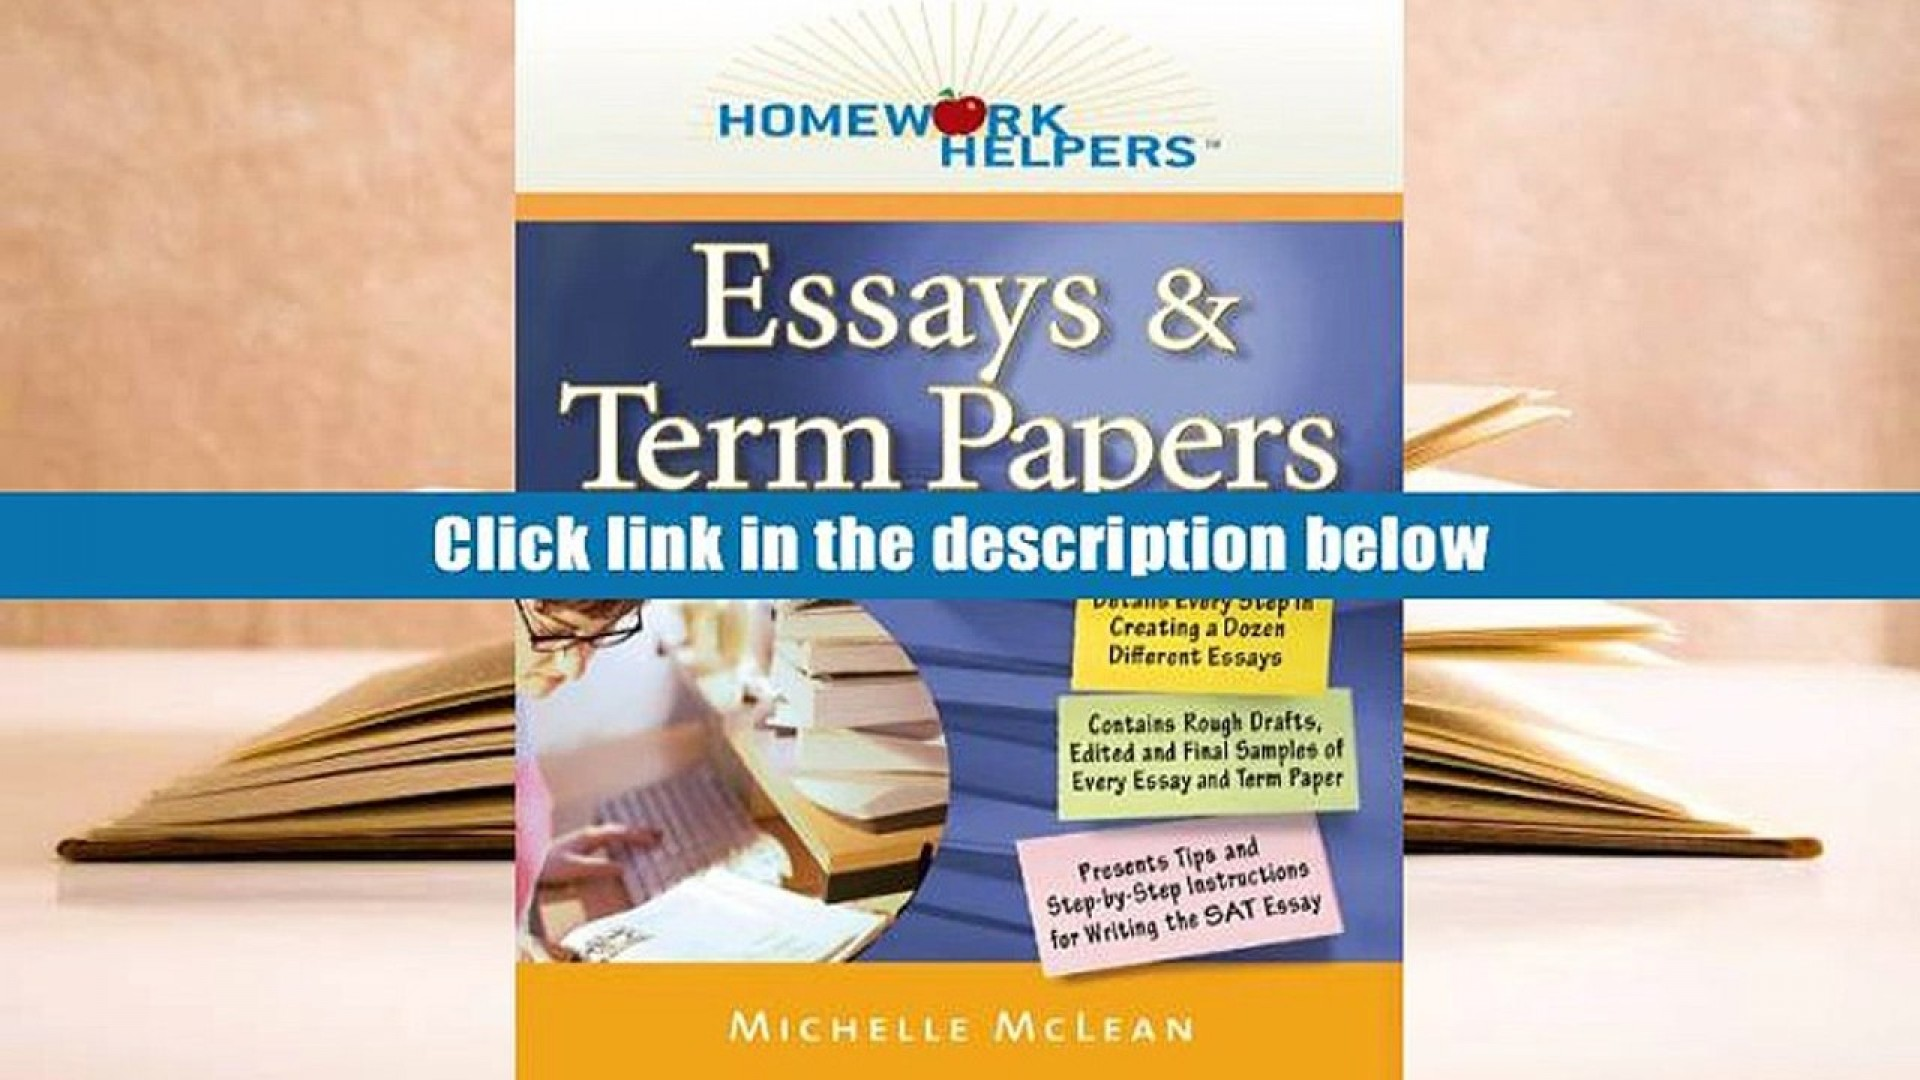 016 Research Paper 1280x720 Qll Custom Term Awesome Papers 1920